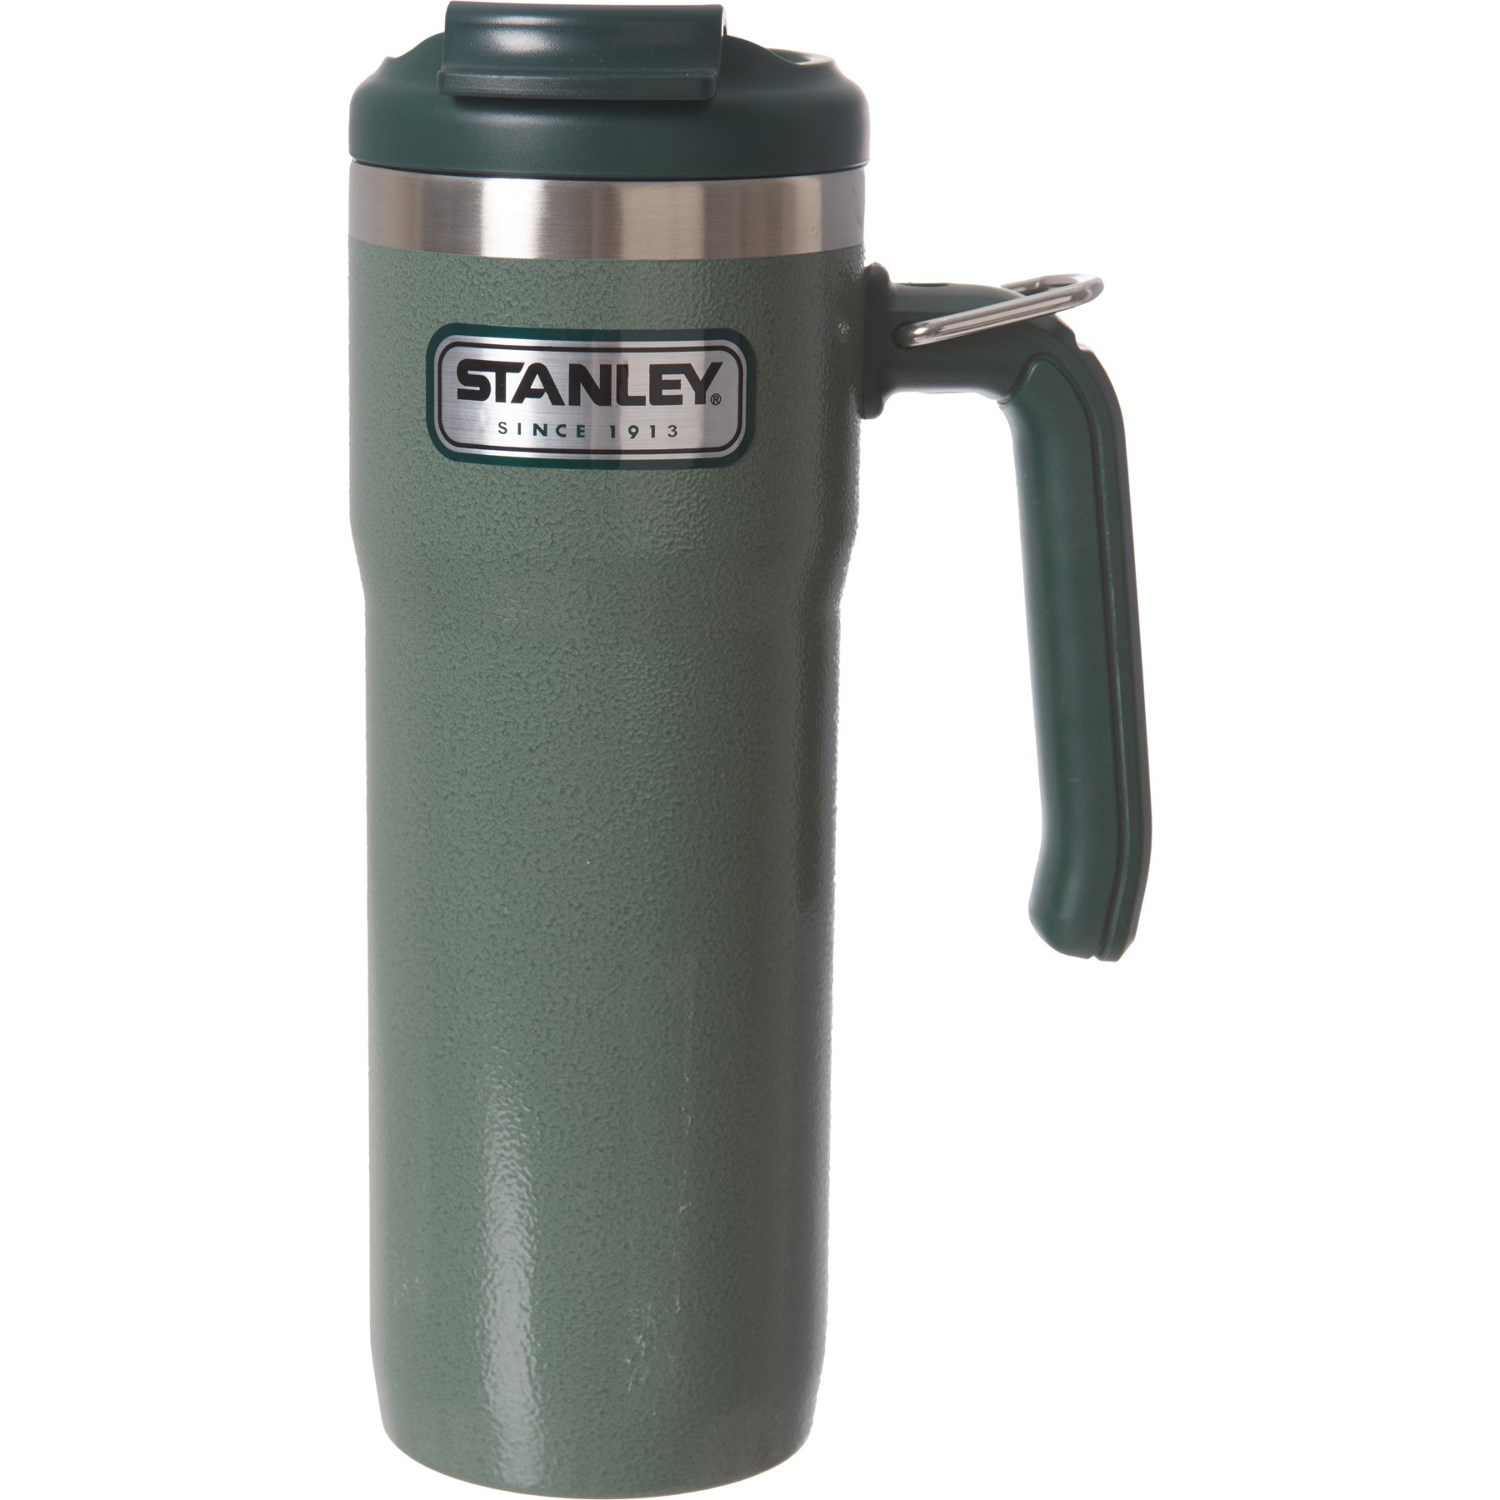 Stanley Twinlock Travel Mug 20 Oz Vacuum Insulated